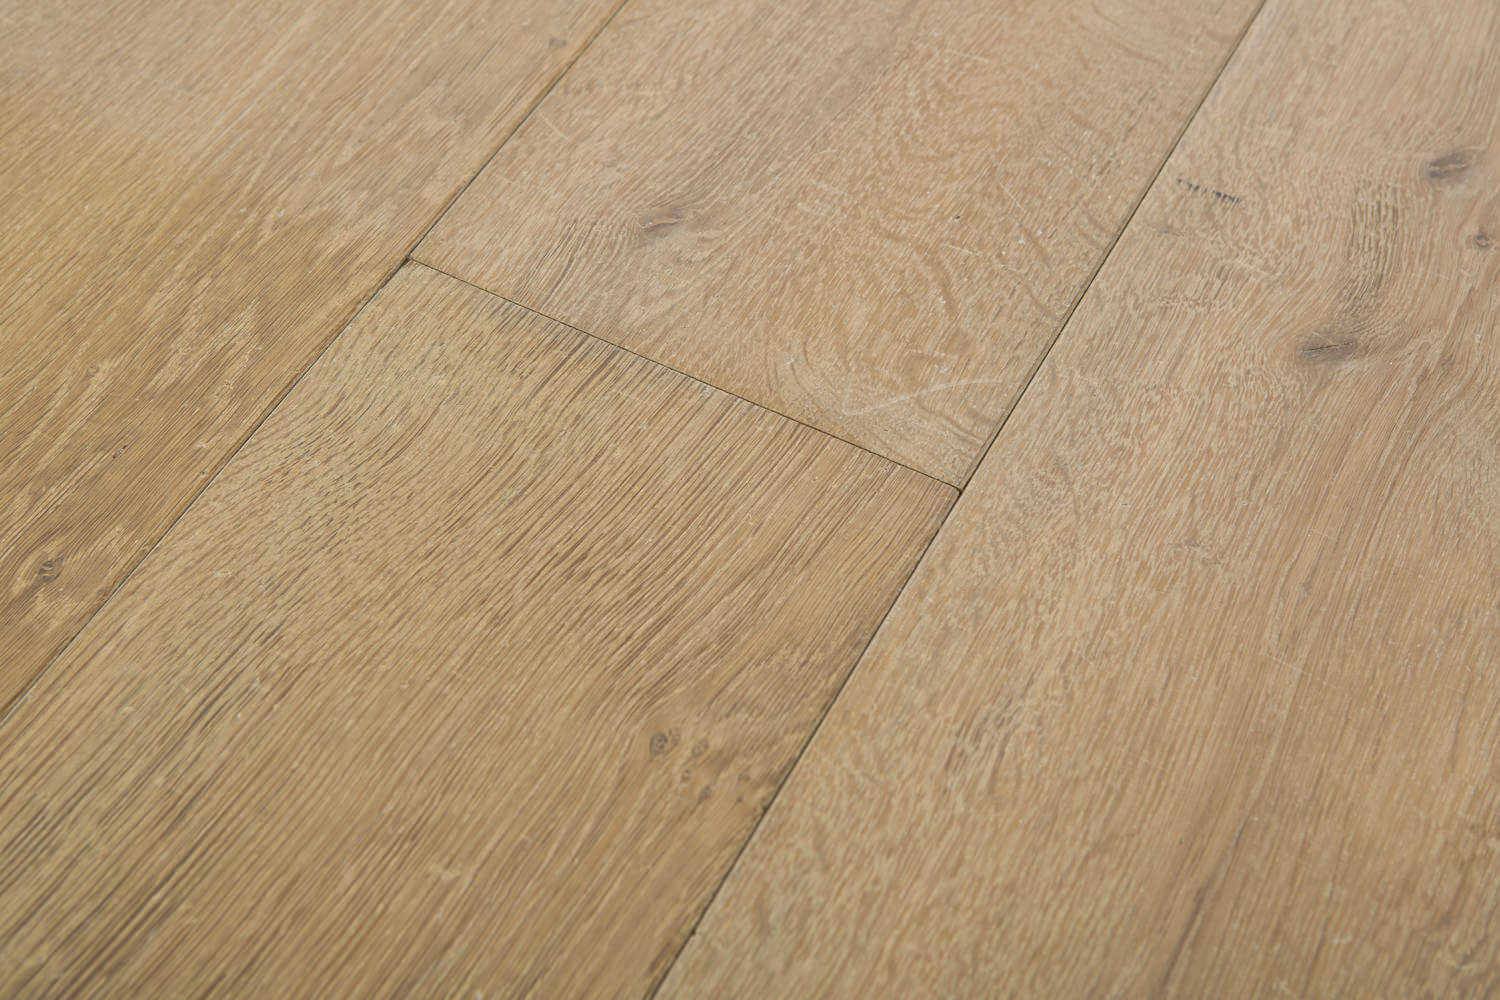 3 Oak Floor Product Beaulieu Champagne